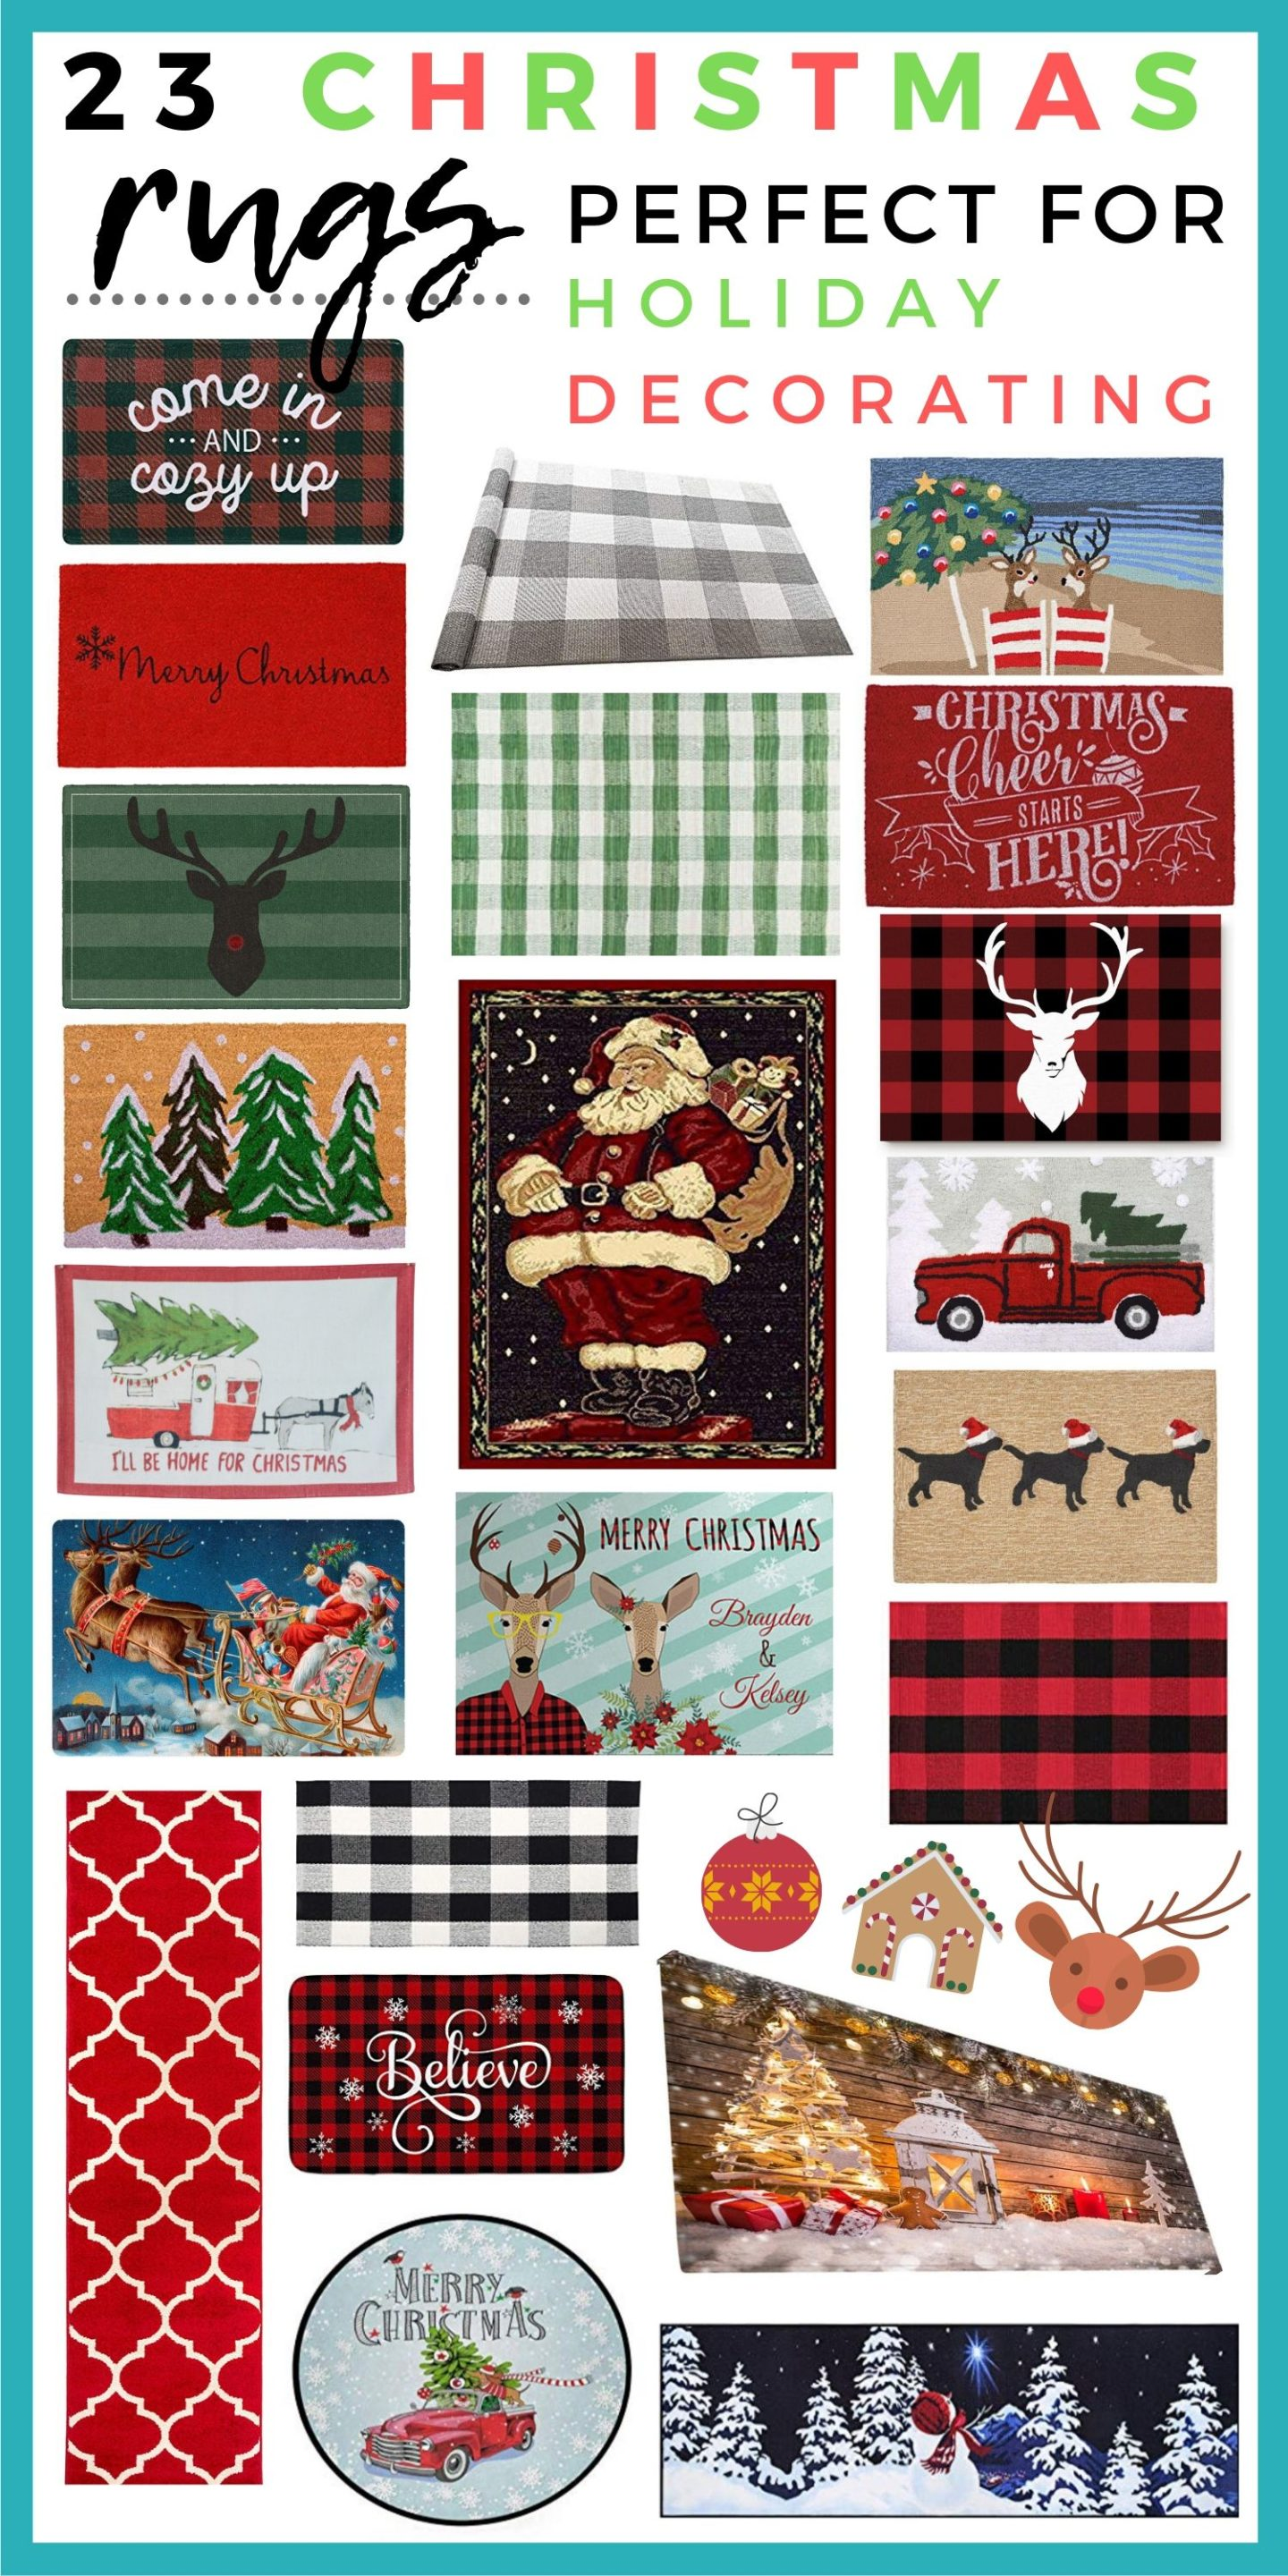 23 Christmas Rugs Perfect For Holiday Decorating Holly Habeck